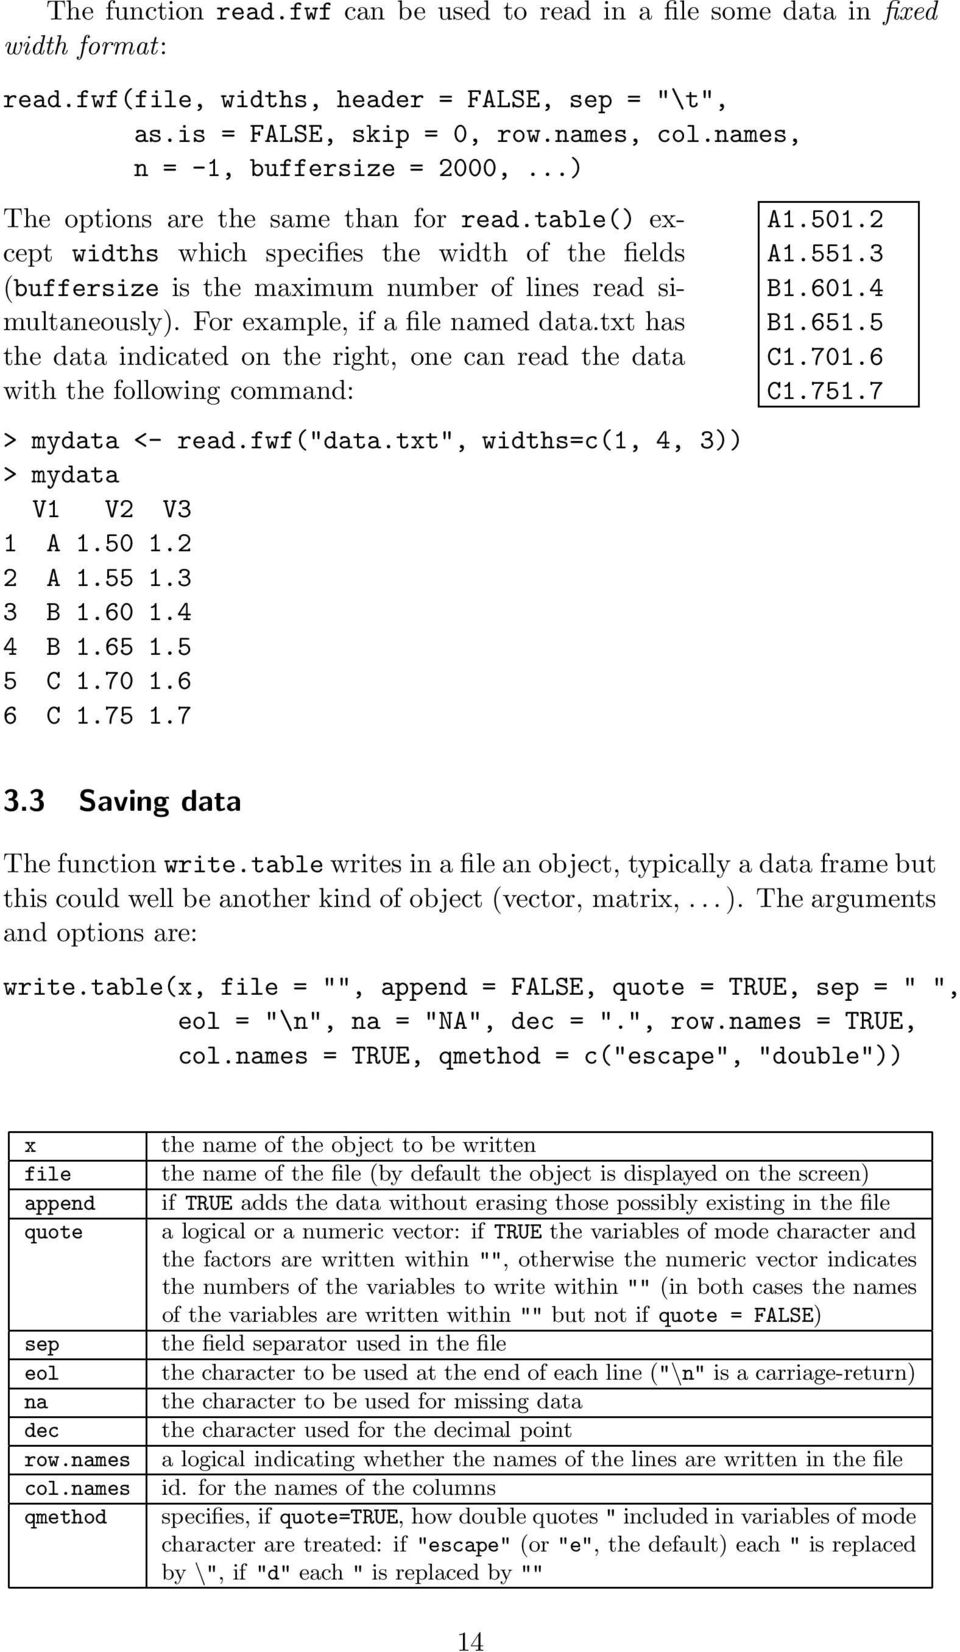 "Fr example, if a file named data.txt has the data indicated n the right, ne can read the data with the fllwing cmmand: > mydata <- read.fwf(""data.txt"", widths=c(1, 4, 3)) > mydata V1 V2 V3 1 A 1.50 1."